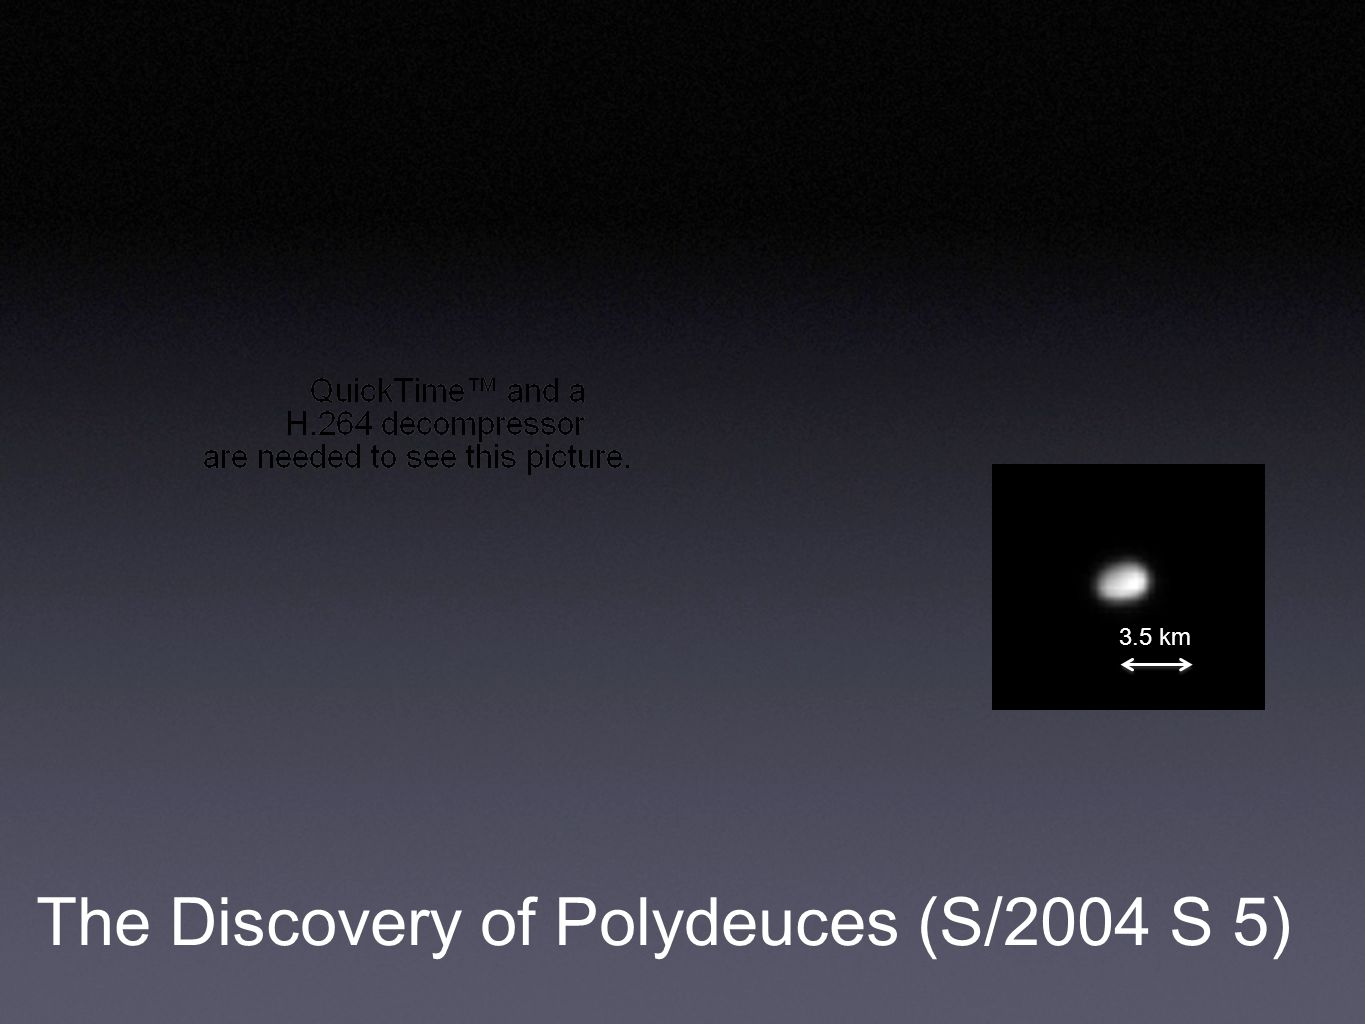 The Discovery of Polydeuces (S/2004 S 5) 3.5 km